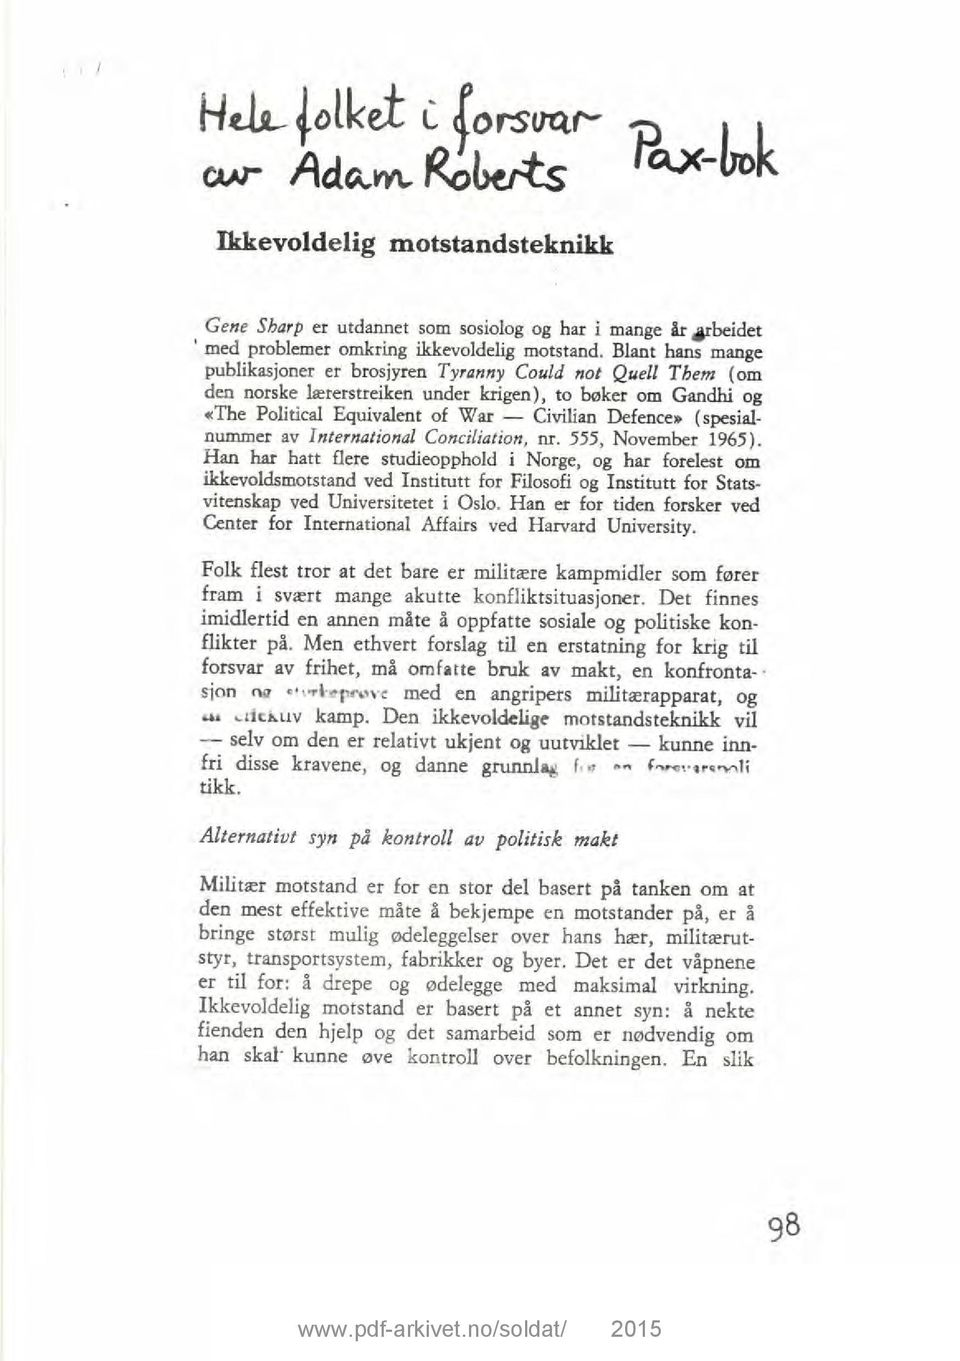 (spesialnummer av International Conciliation, nr. 555, November 1965).